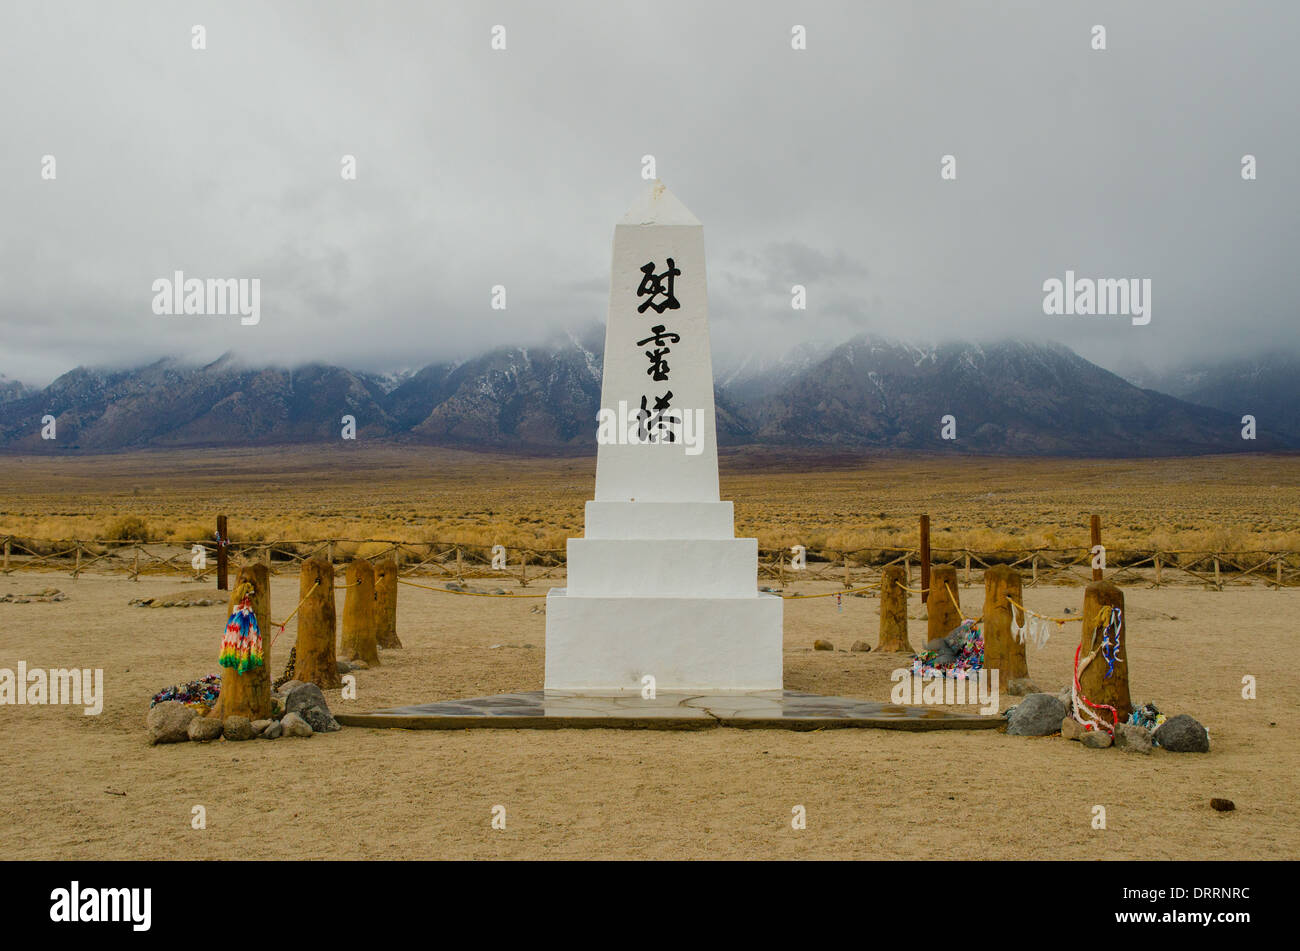 Memorial at Manzanar a WW2 era prison camp that held Japanese Americans located in a remote desert region in California - Stock Image